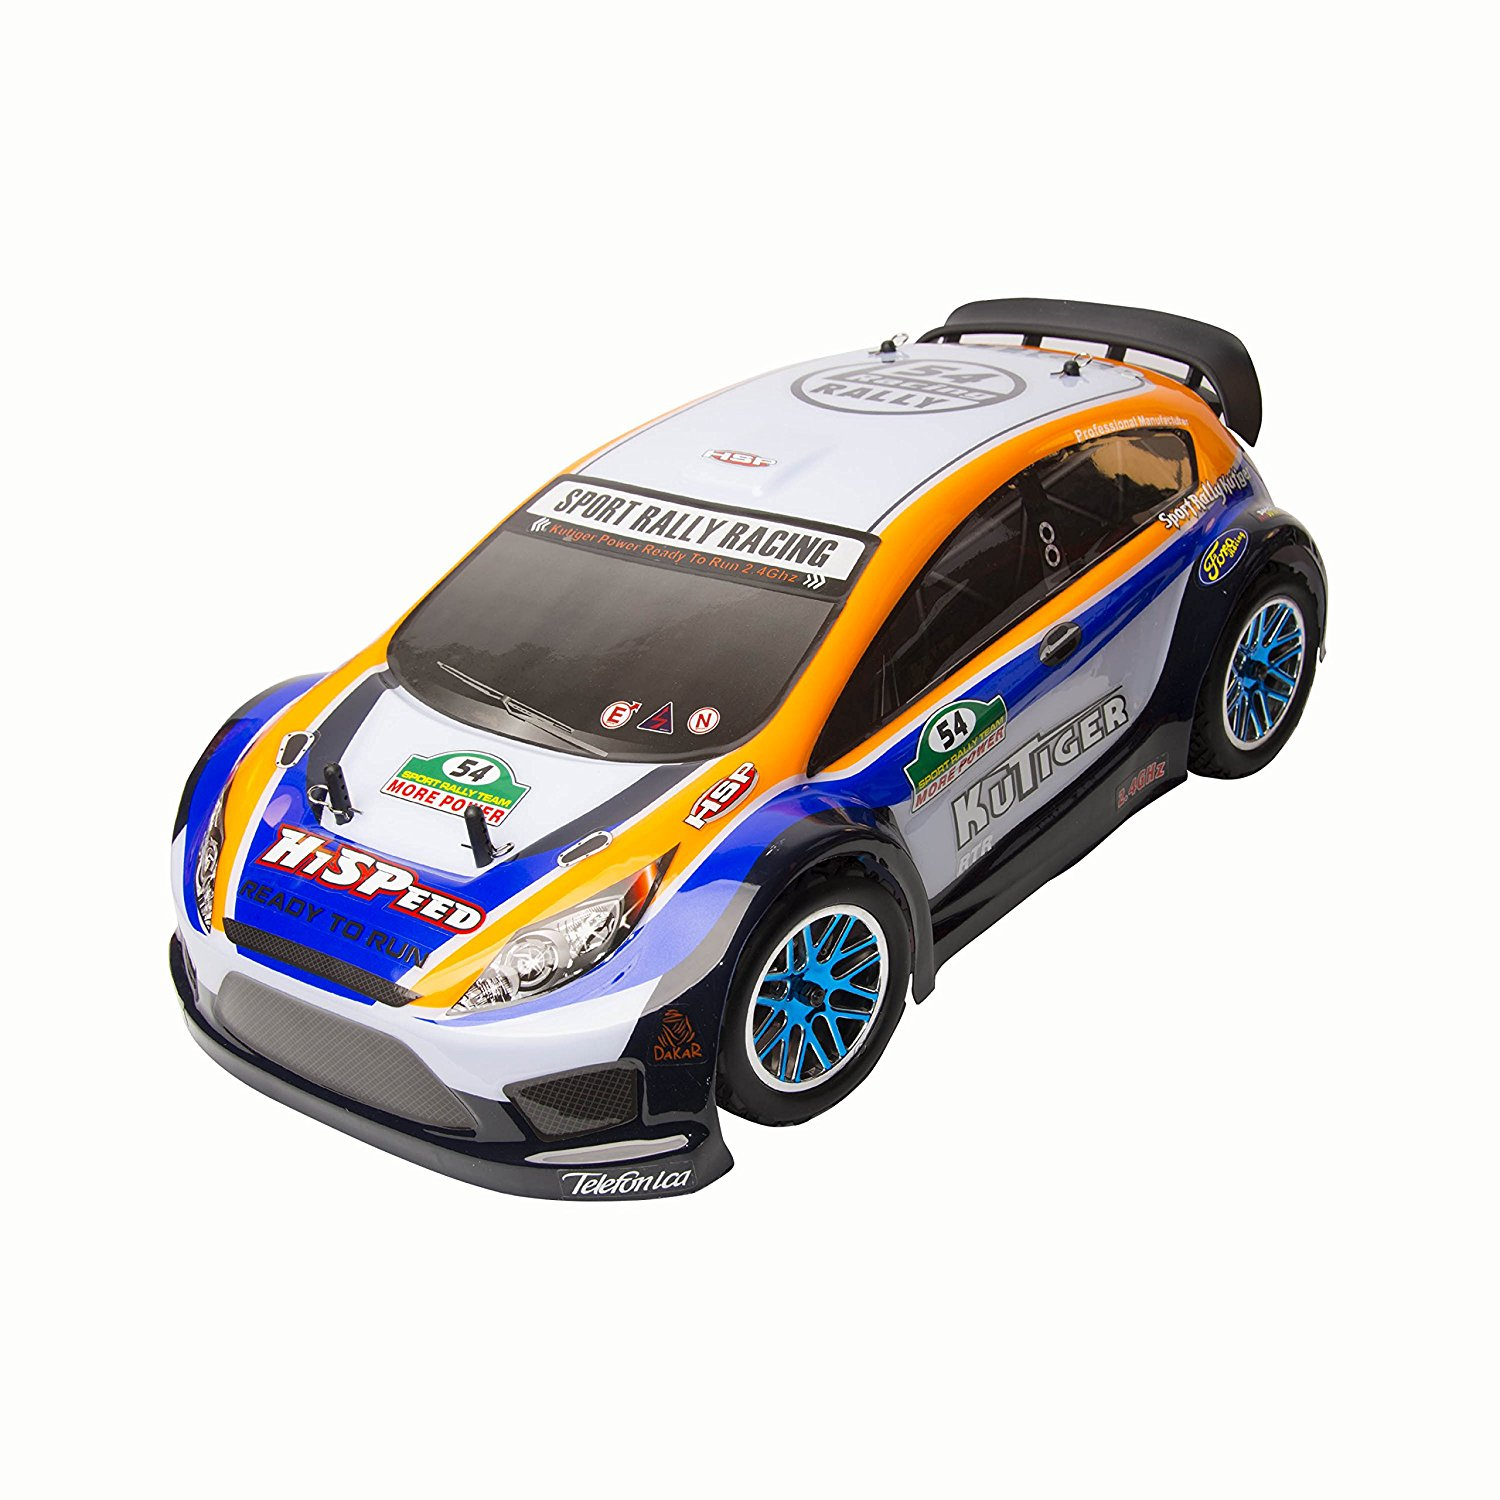 Vertex 18 CXP 4WD 2.4 Gh Nitro Powered Short Course Rally Car Yellow 1/10 Scale